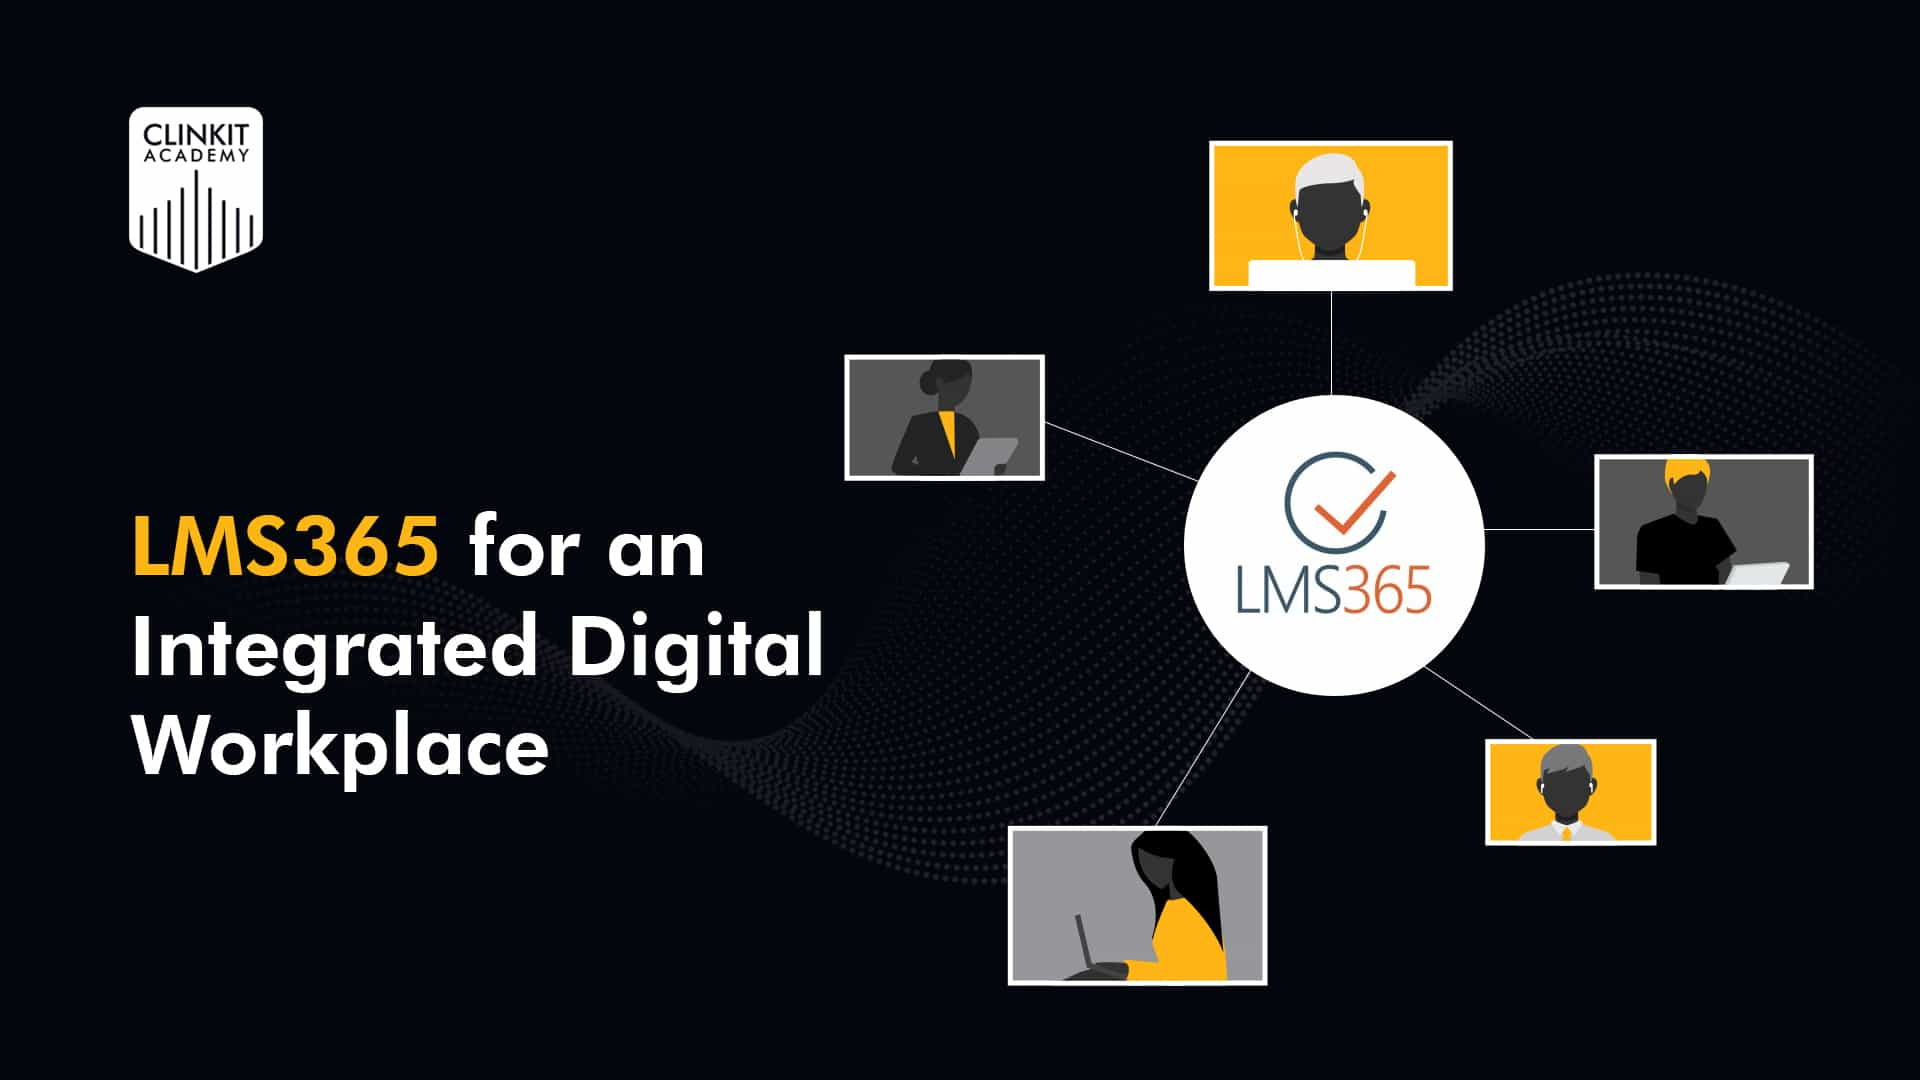 LMS365 for an Integrated Digital Workplace